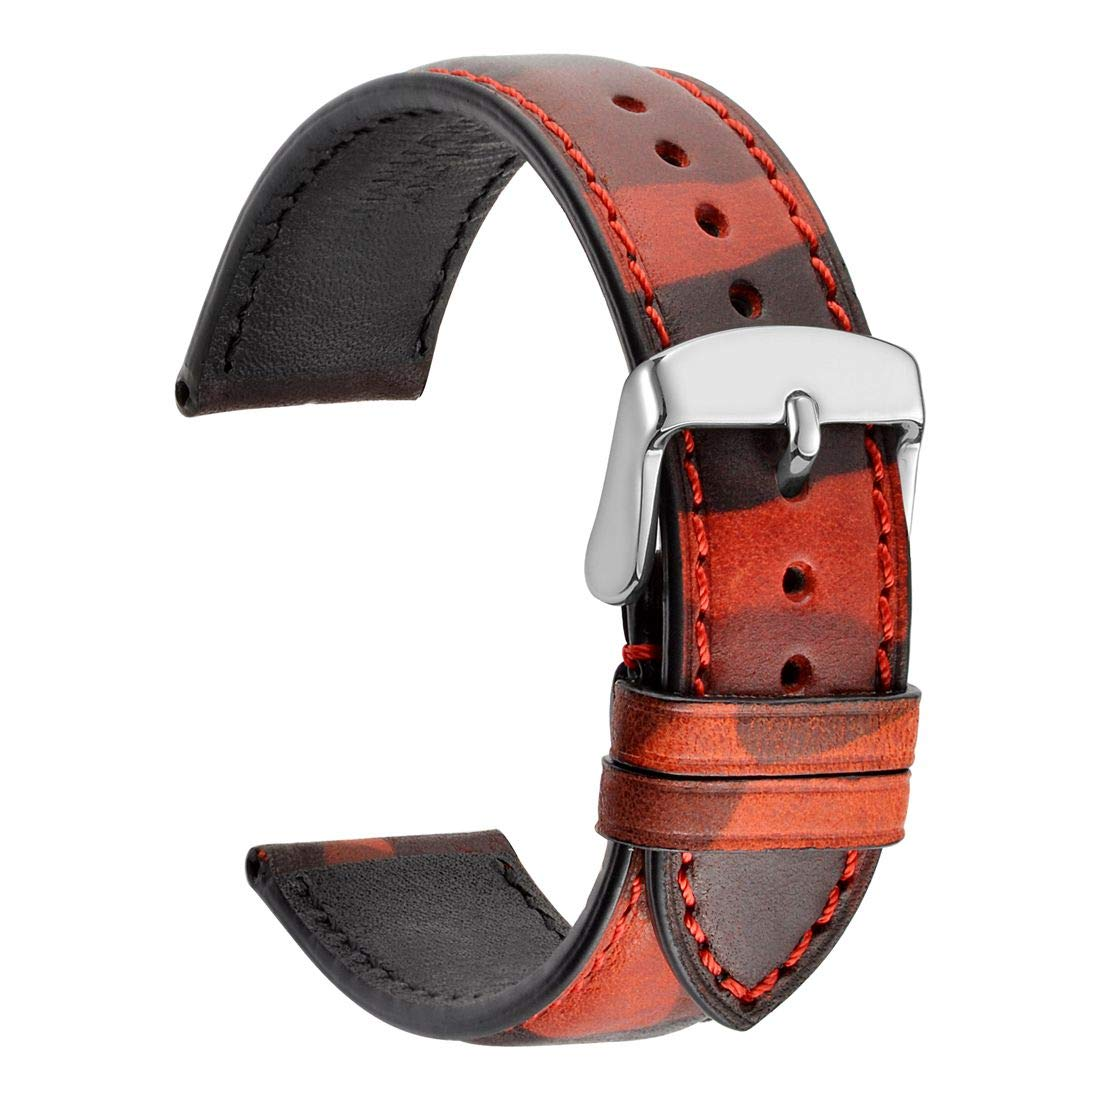 WOCCI 22mm Leather Watch Band Replacement - Camo Series Watch Strap for Men or Women (Flames/Red)